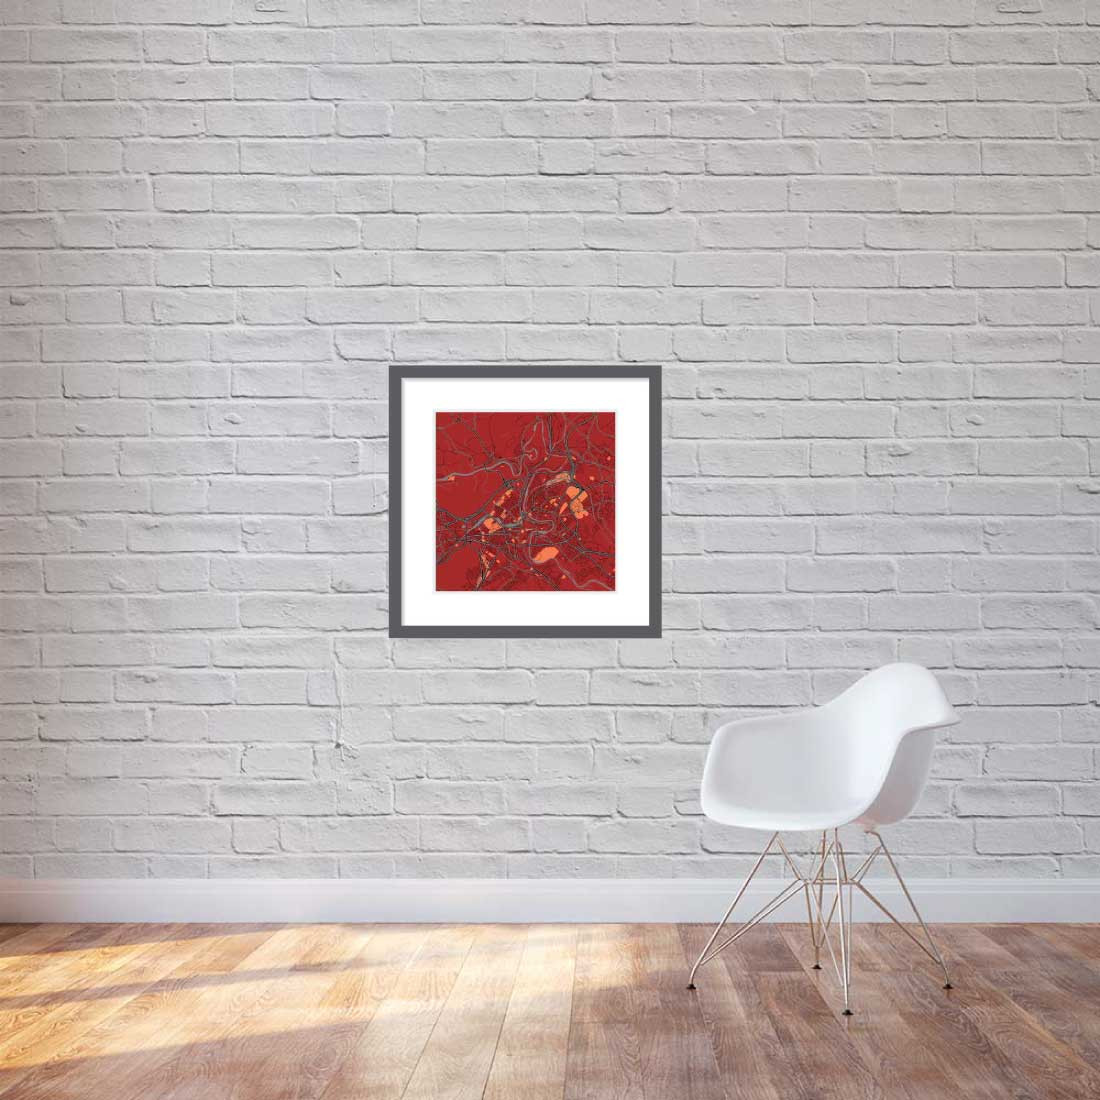 Matt print 60cmx60cm Bern Stylish Brick